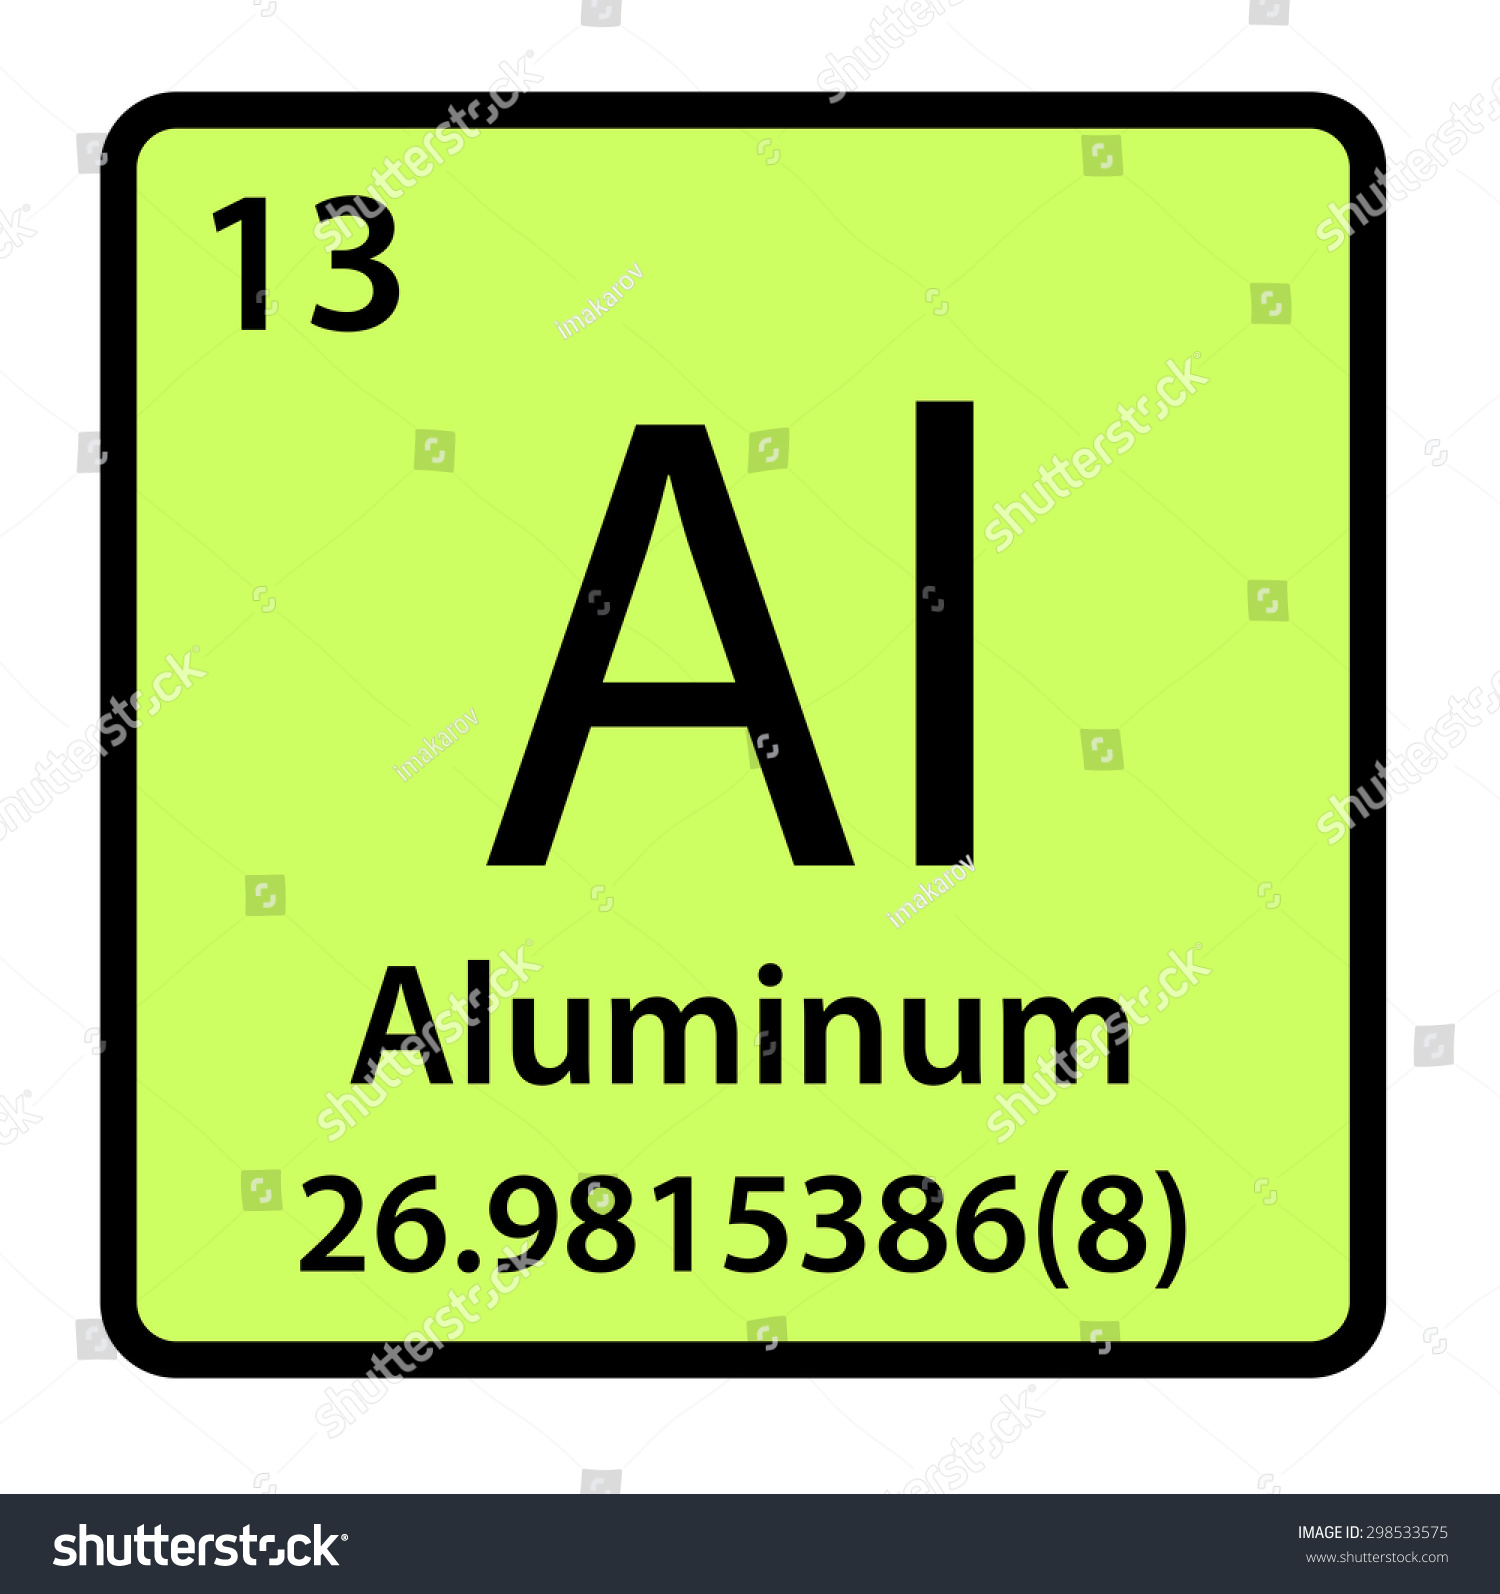 Element aluminum periodic table stock illustration 298533575 element aluminum of the periodic table gamestrikefo Image collections